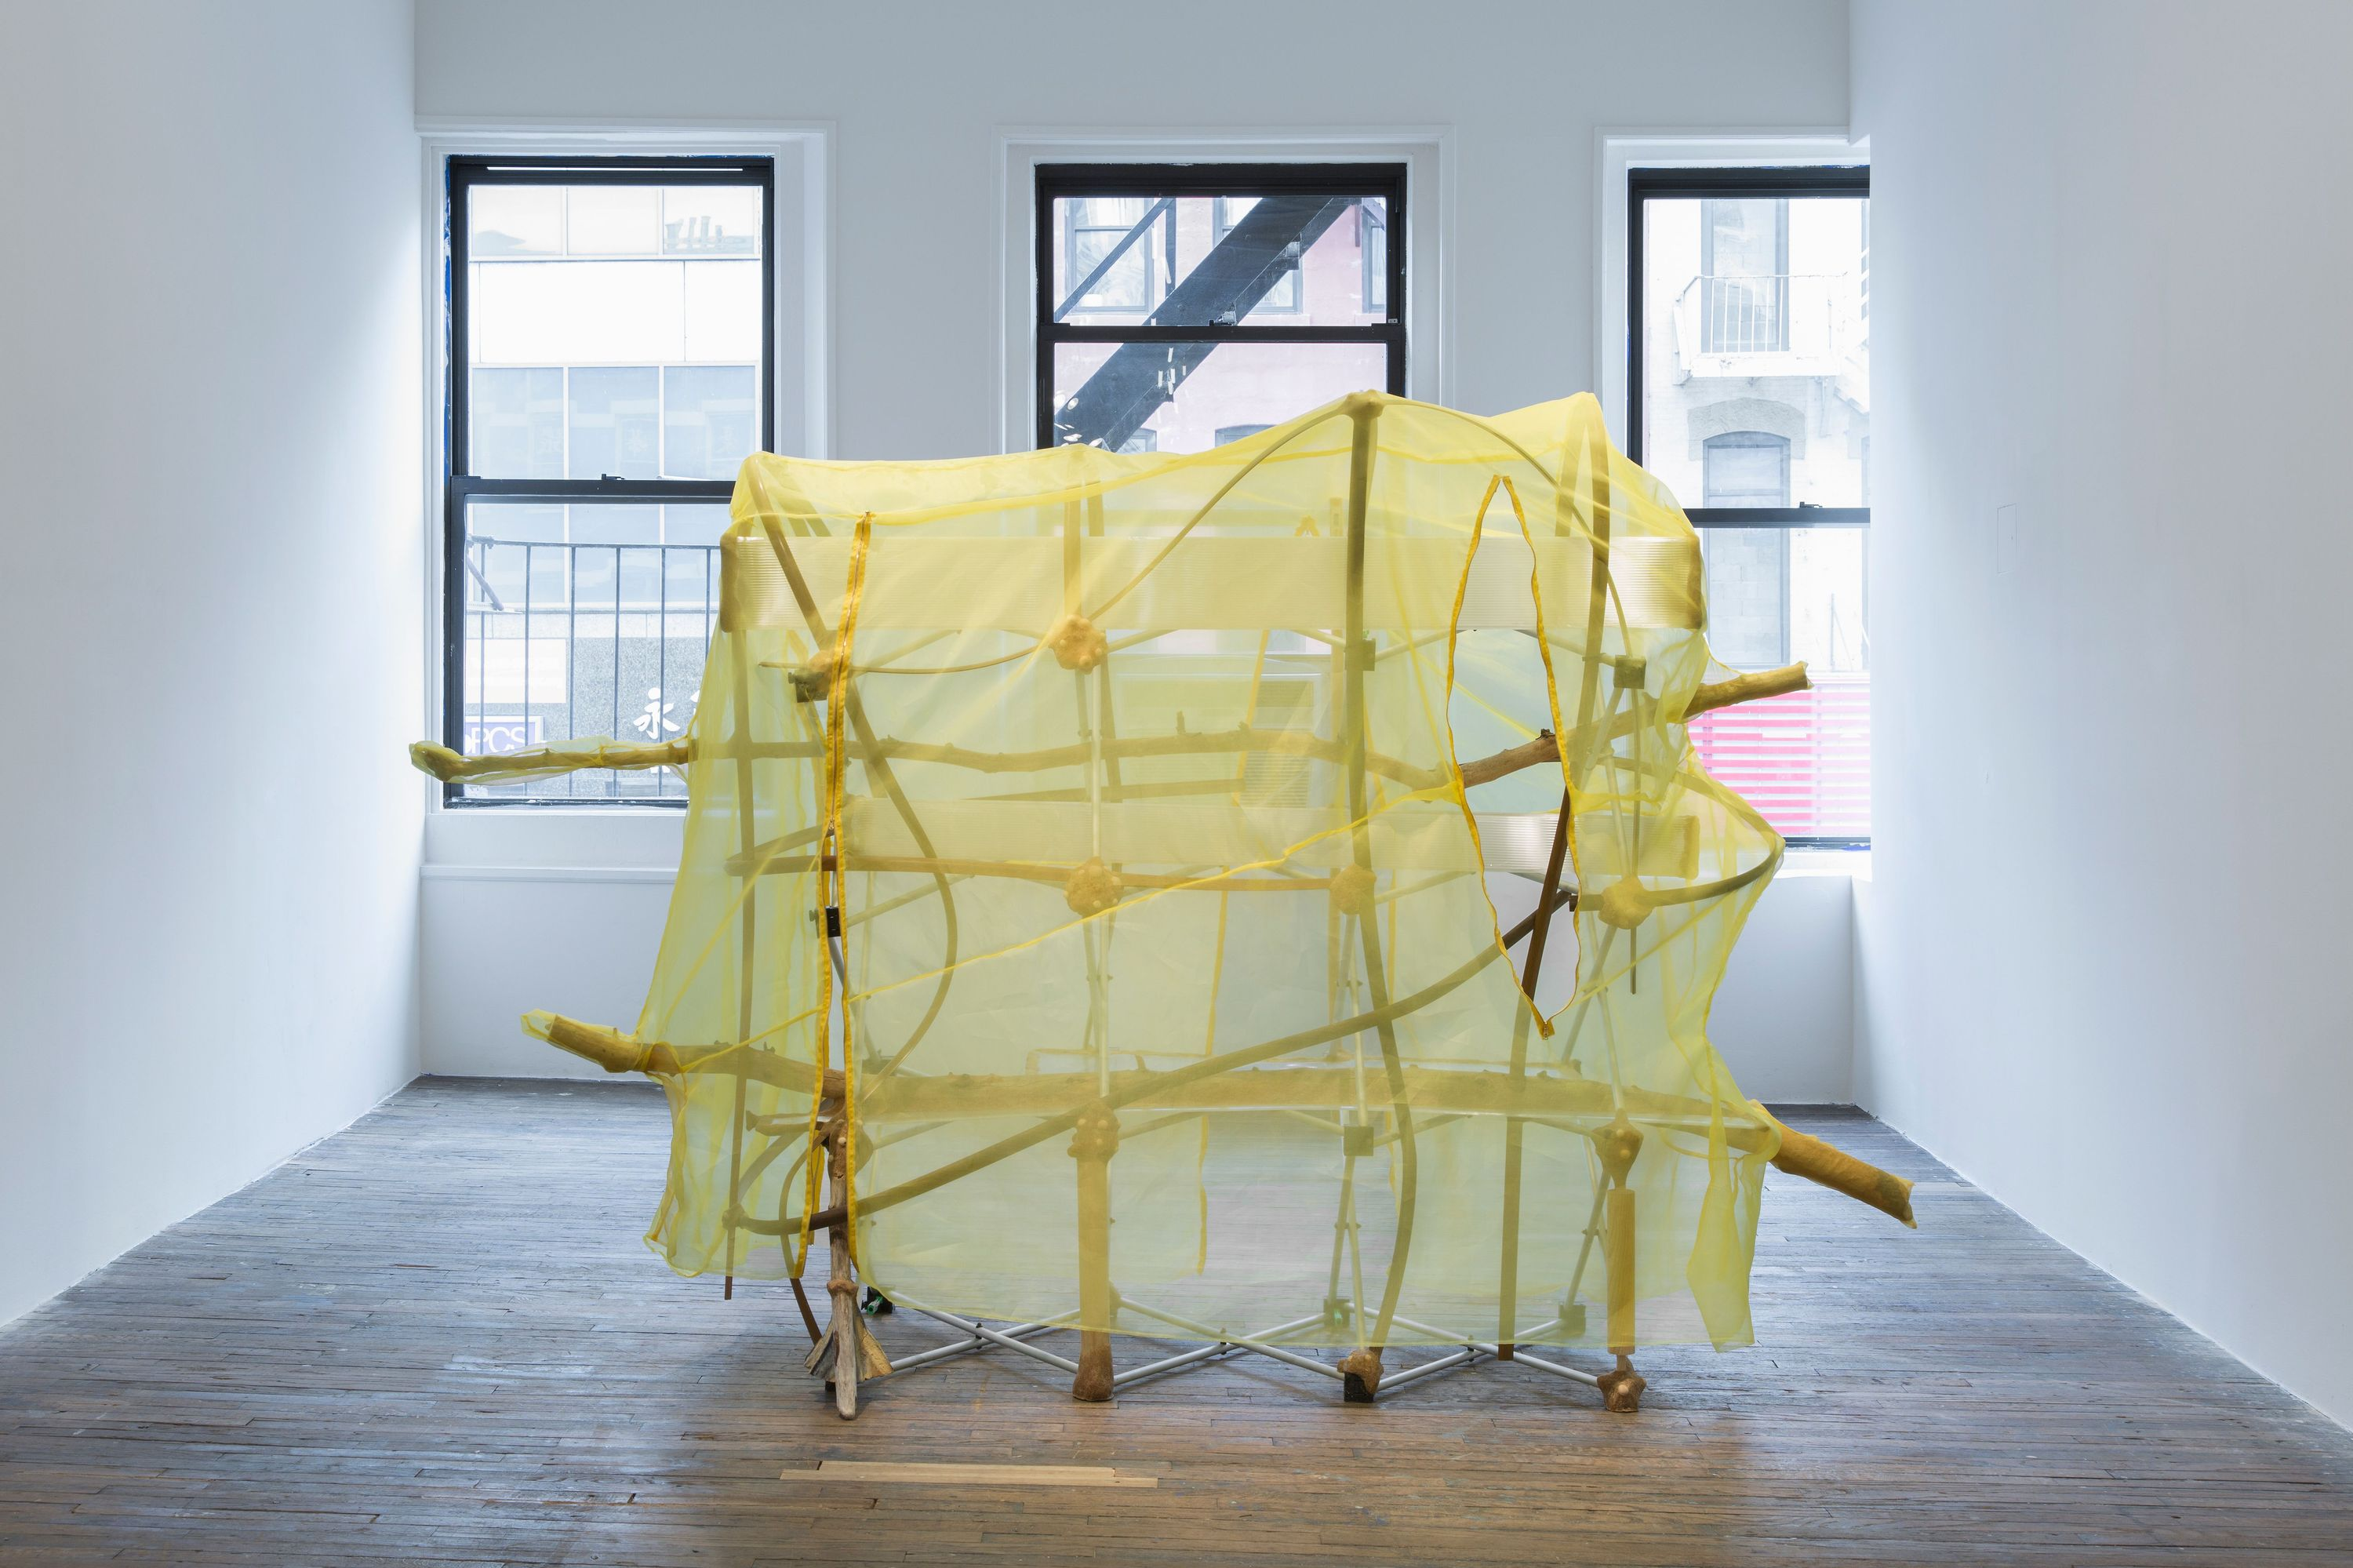 Jessi Reaves II sculpture at Bridget Donahue gallery in new york city